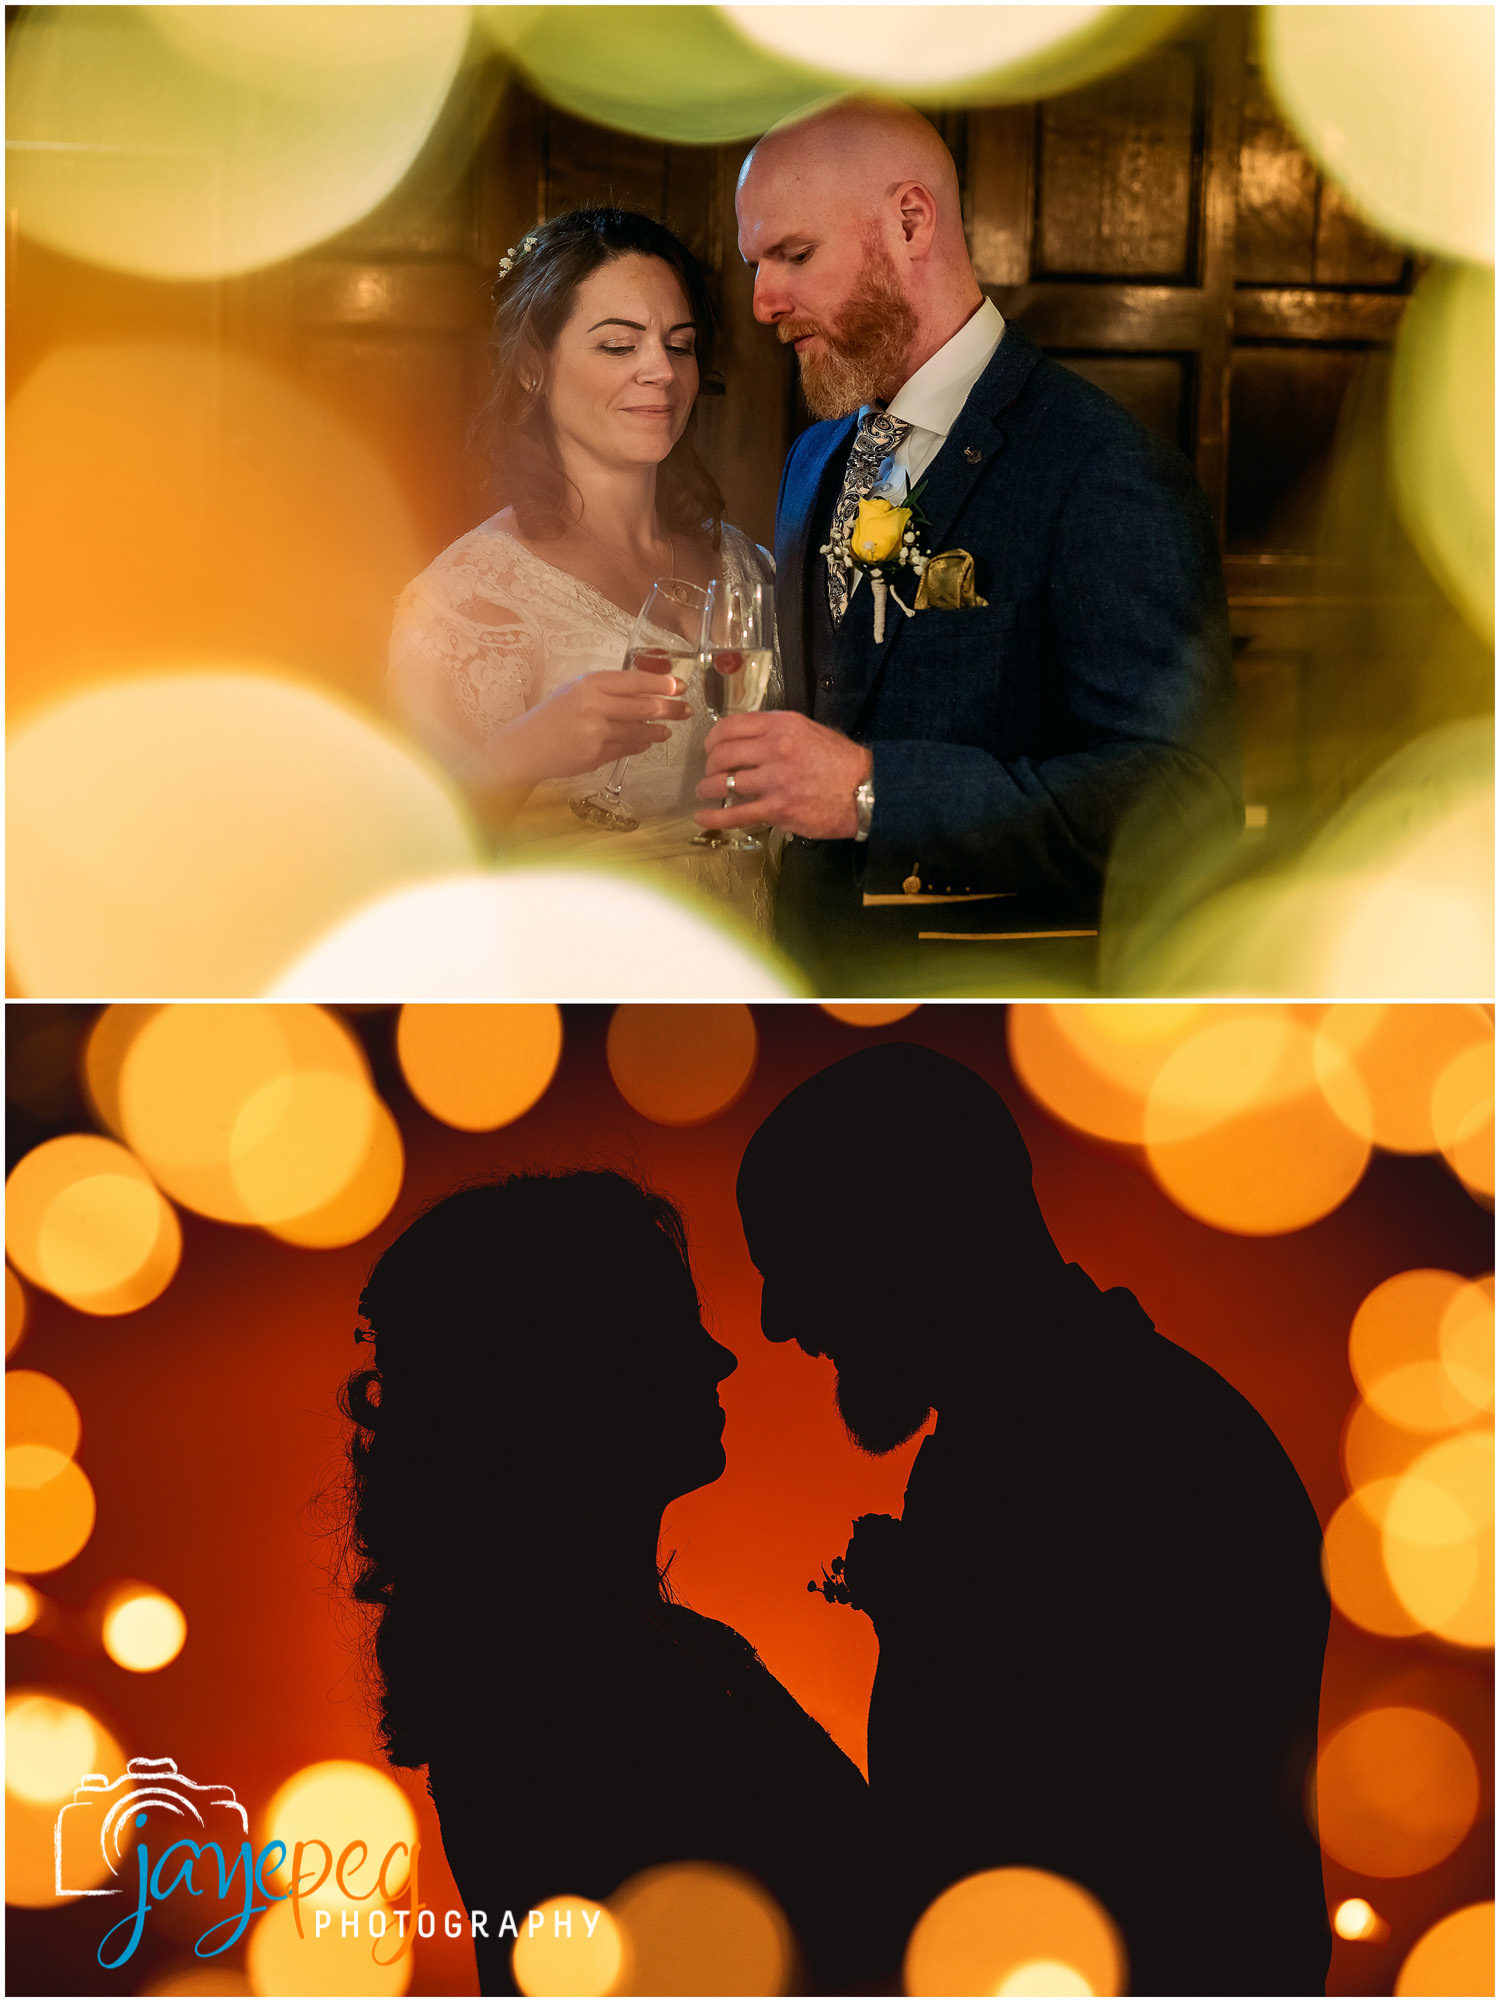 photographs of a bride and groom surrounded by bokeh balls and in silhouette